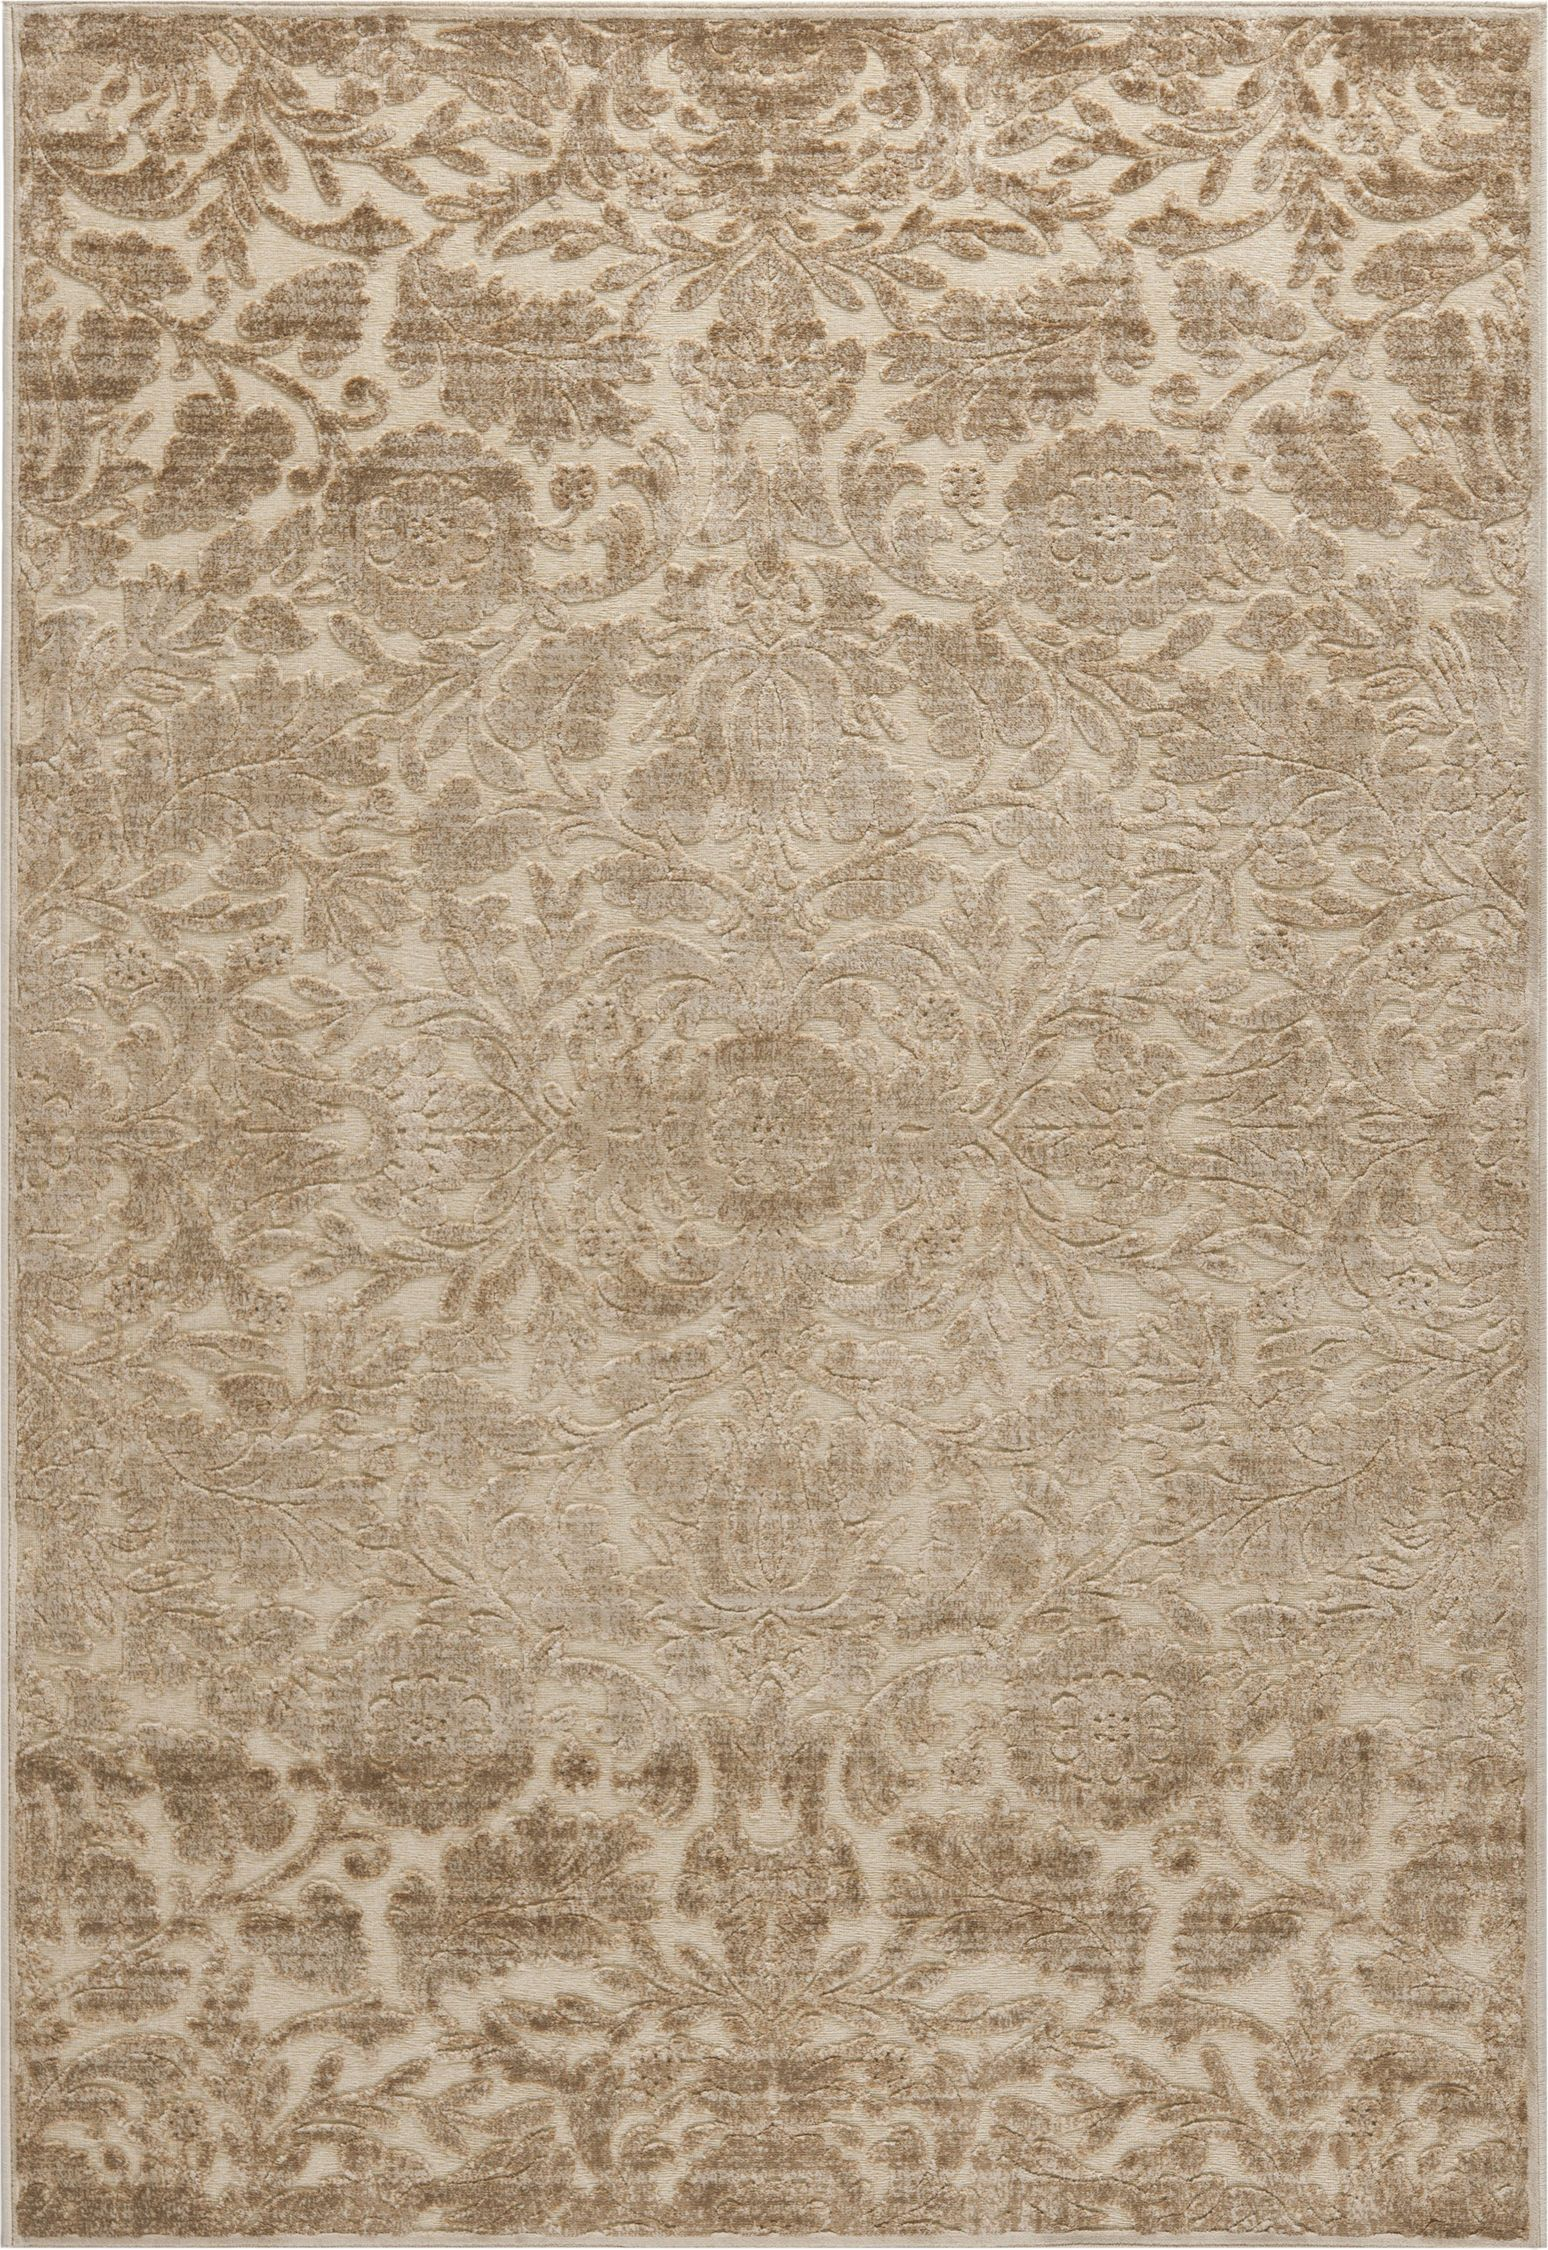 Msr4478 3440 Color Dune Size 8 10 X 12 2 Area Rugs Rugs